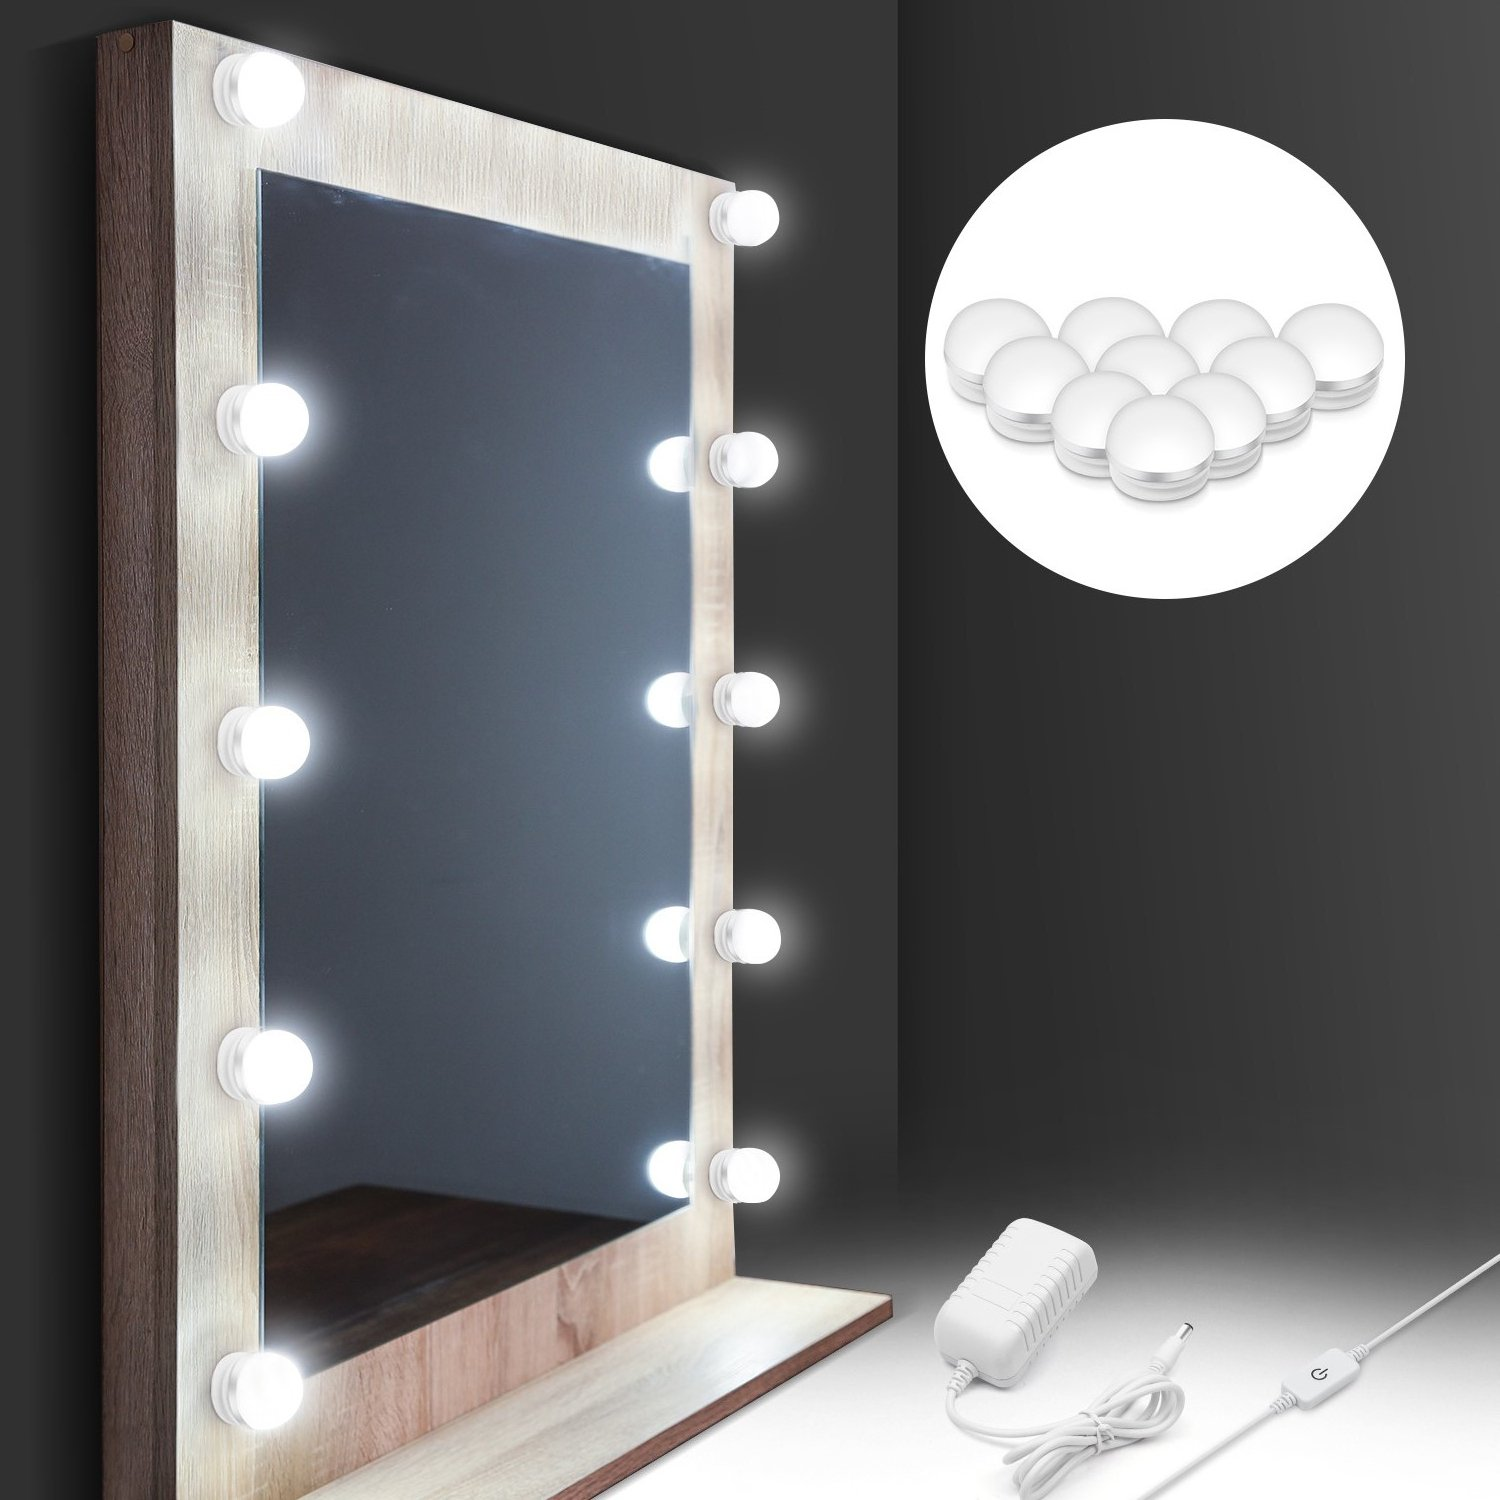 2018 Upgraded Hollywood Style Led Vanity Mirror Lights Kit Auledio